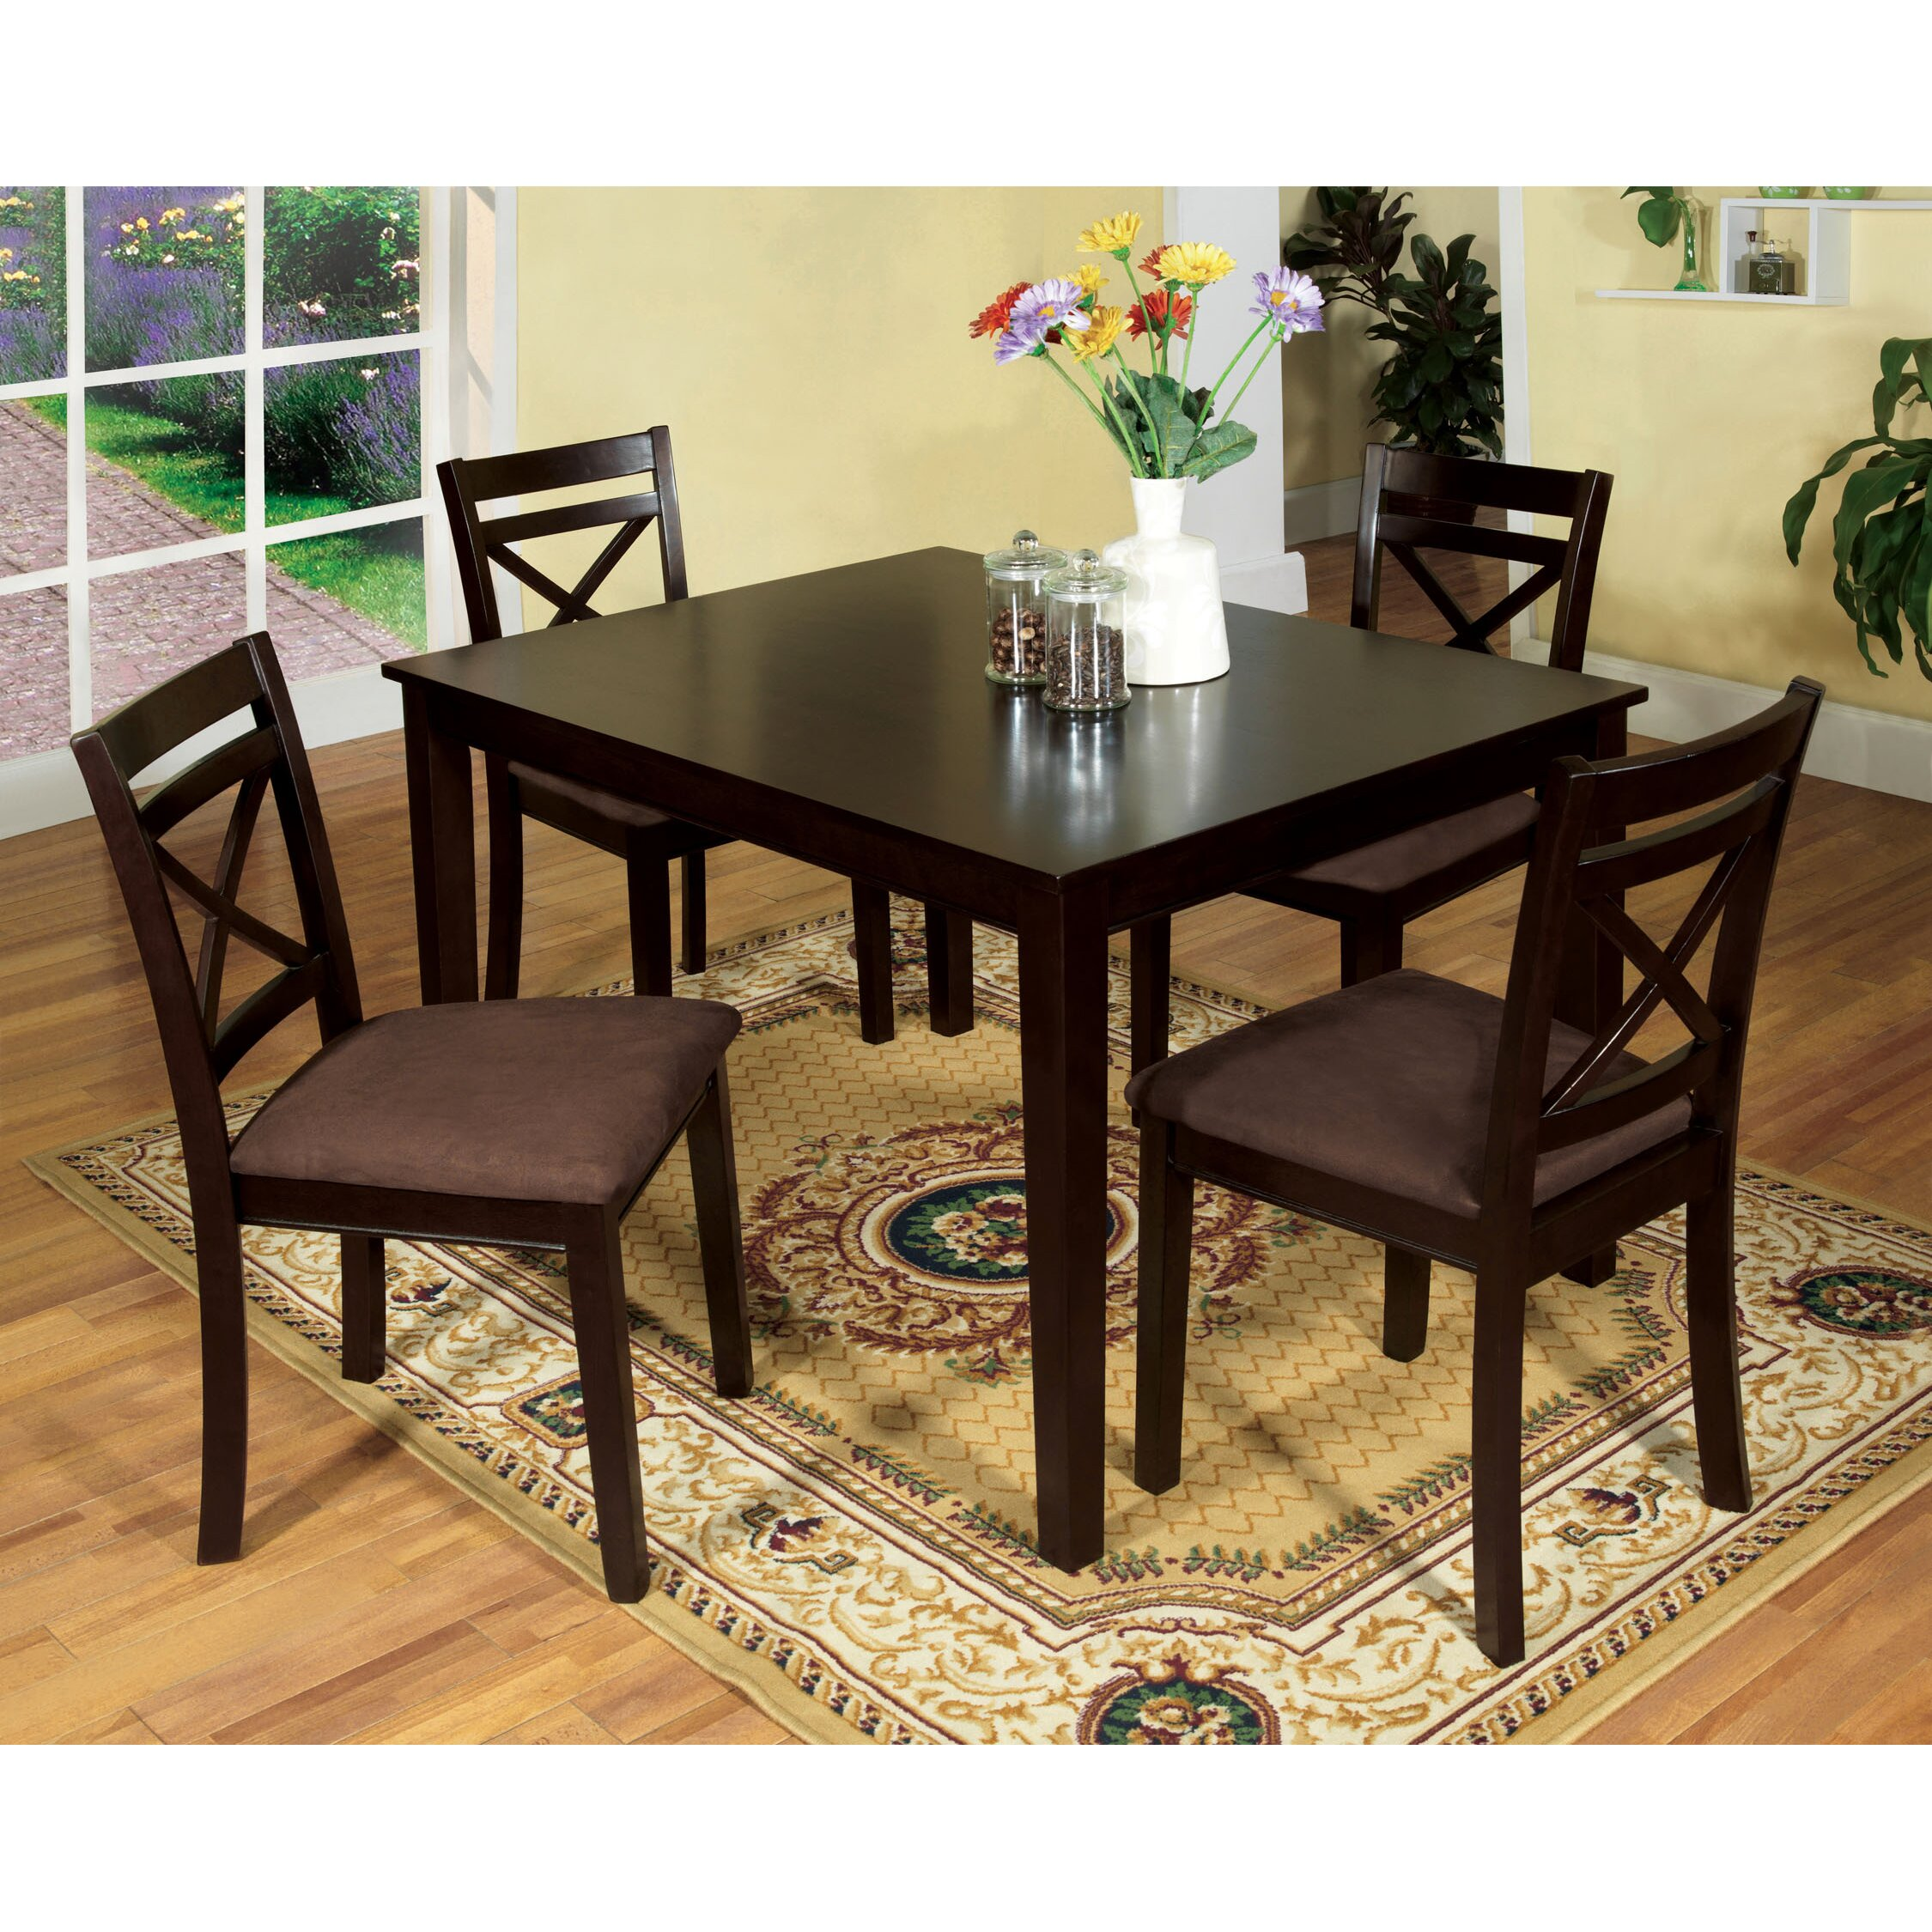 Hokku designs easton 5 piece dining set reviews wayfair for Dining room tables easton